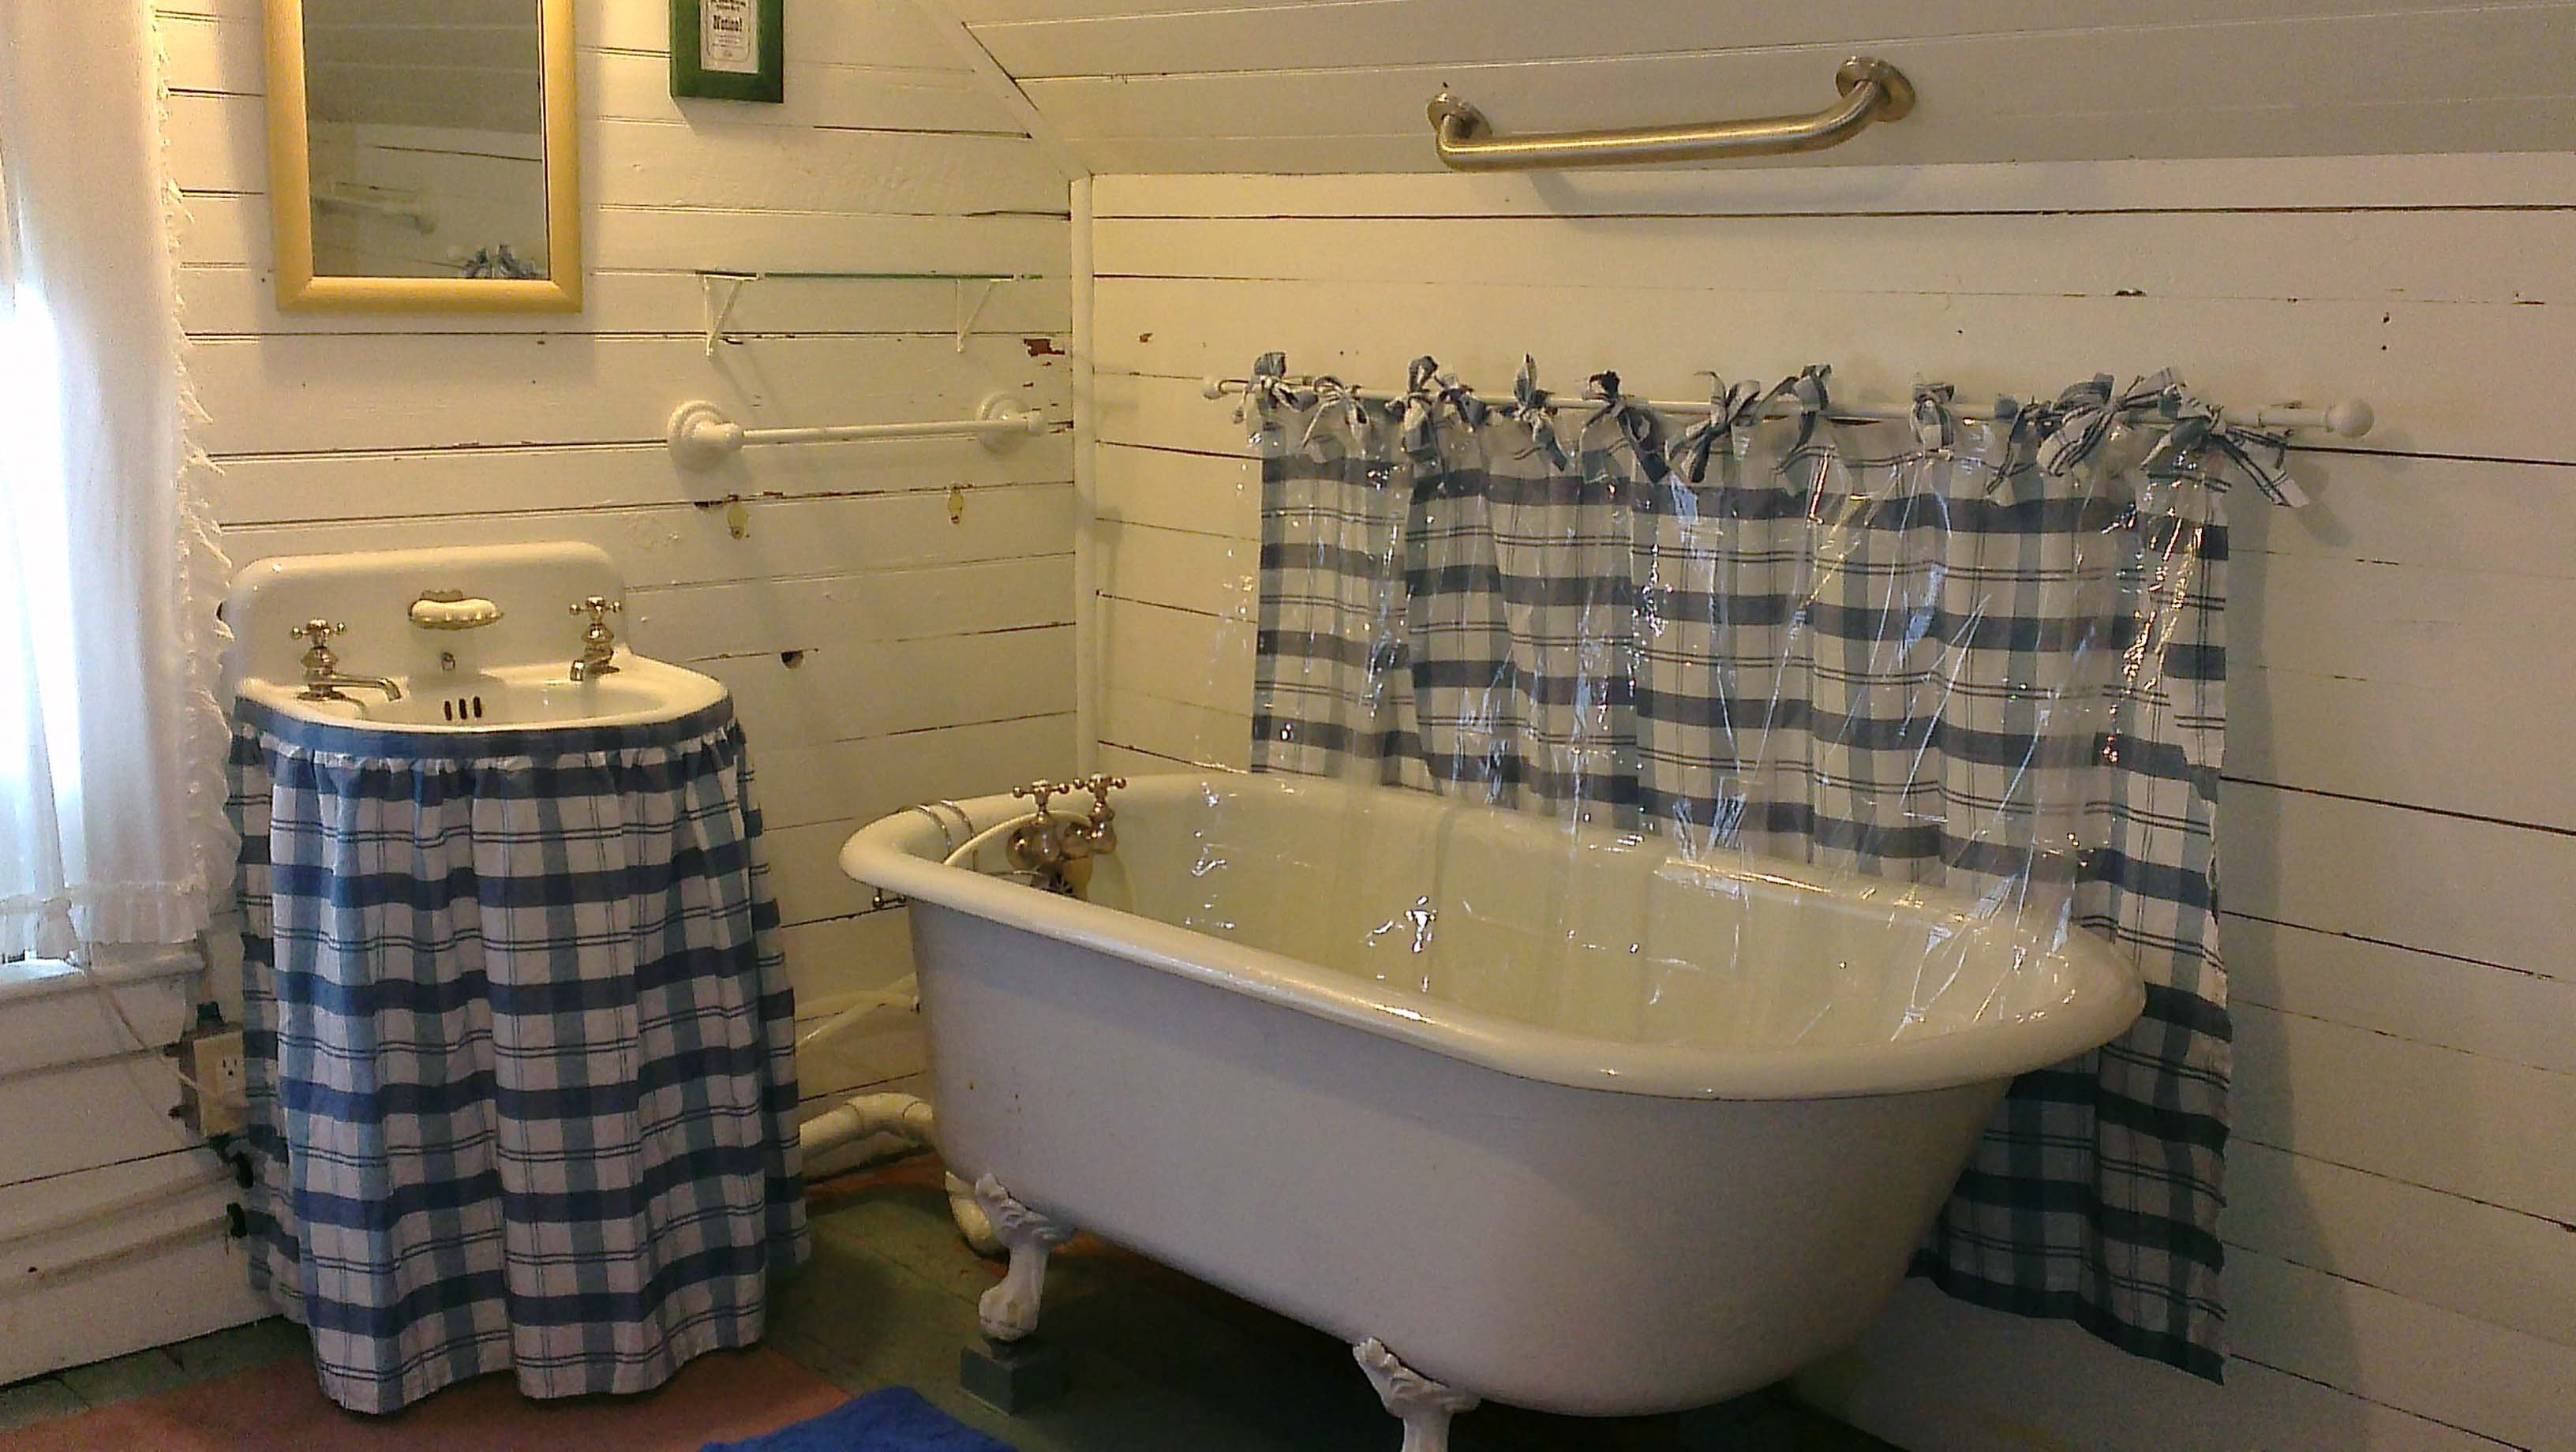 This is one of the shared bathrooms. The other one has a tub and shower.